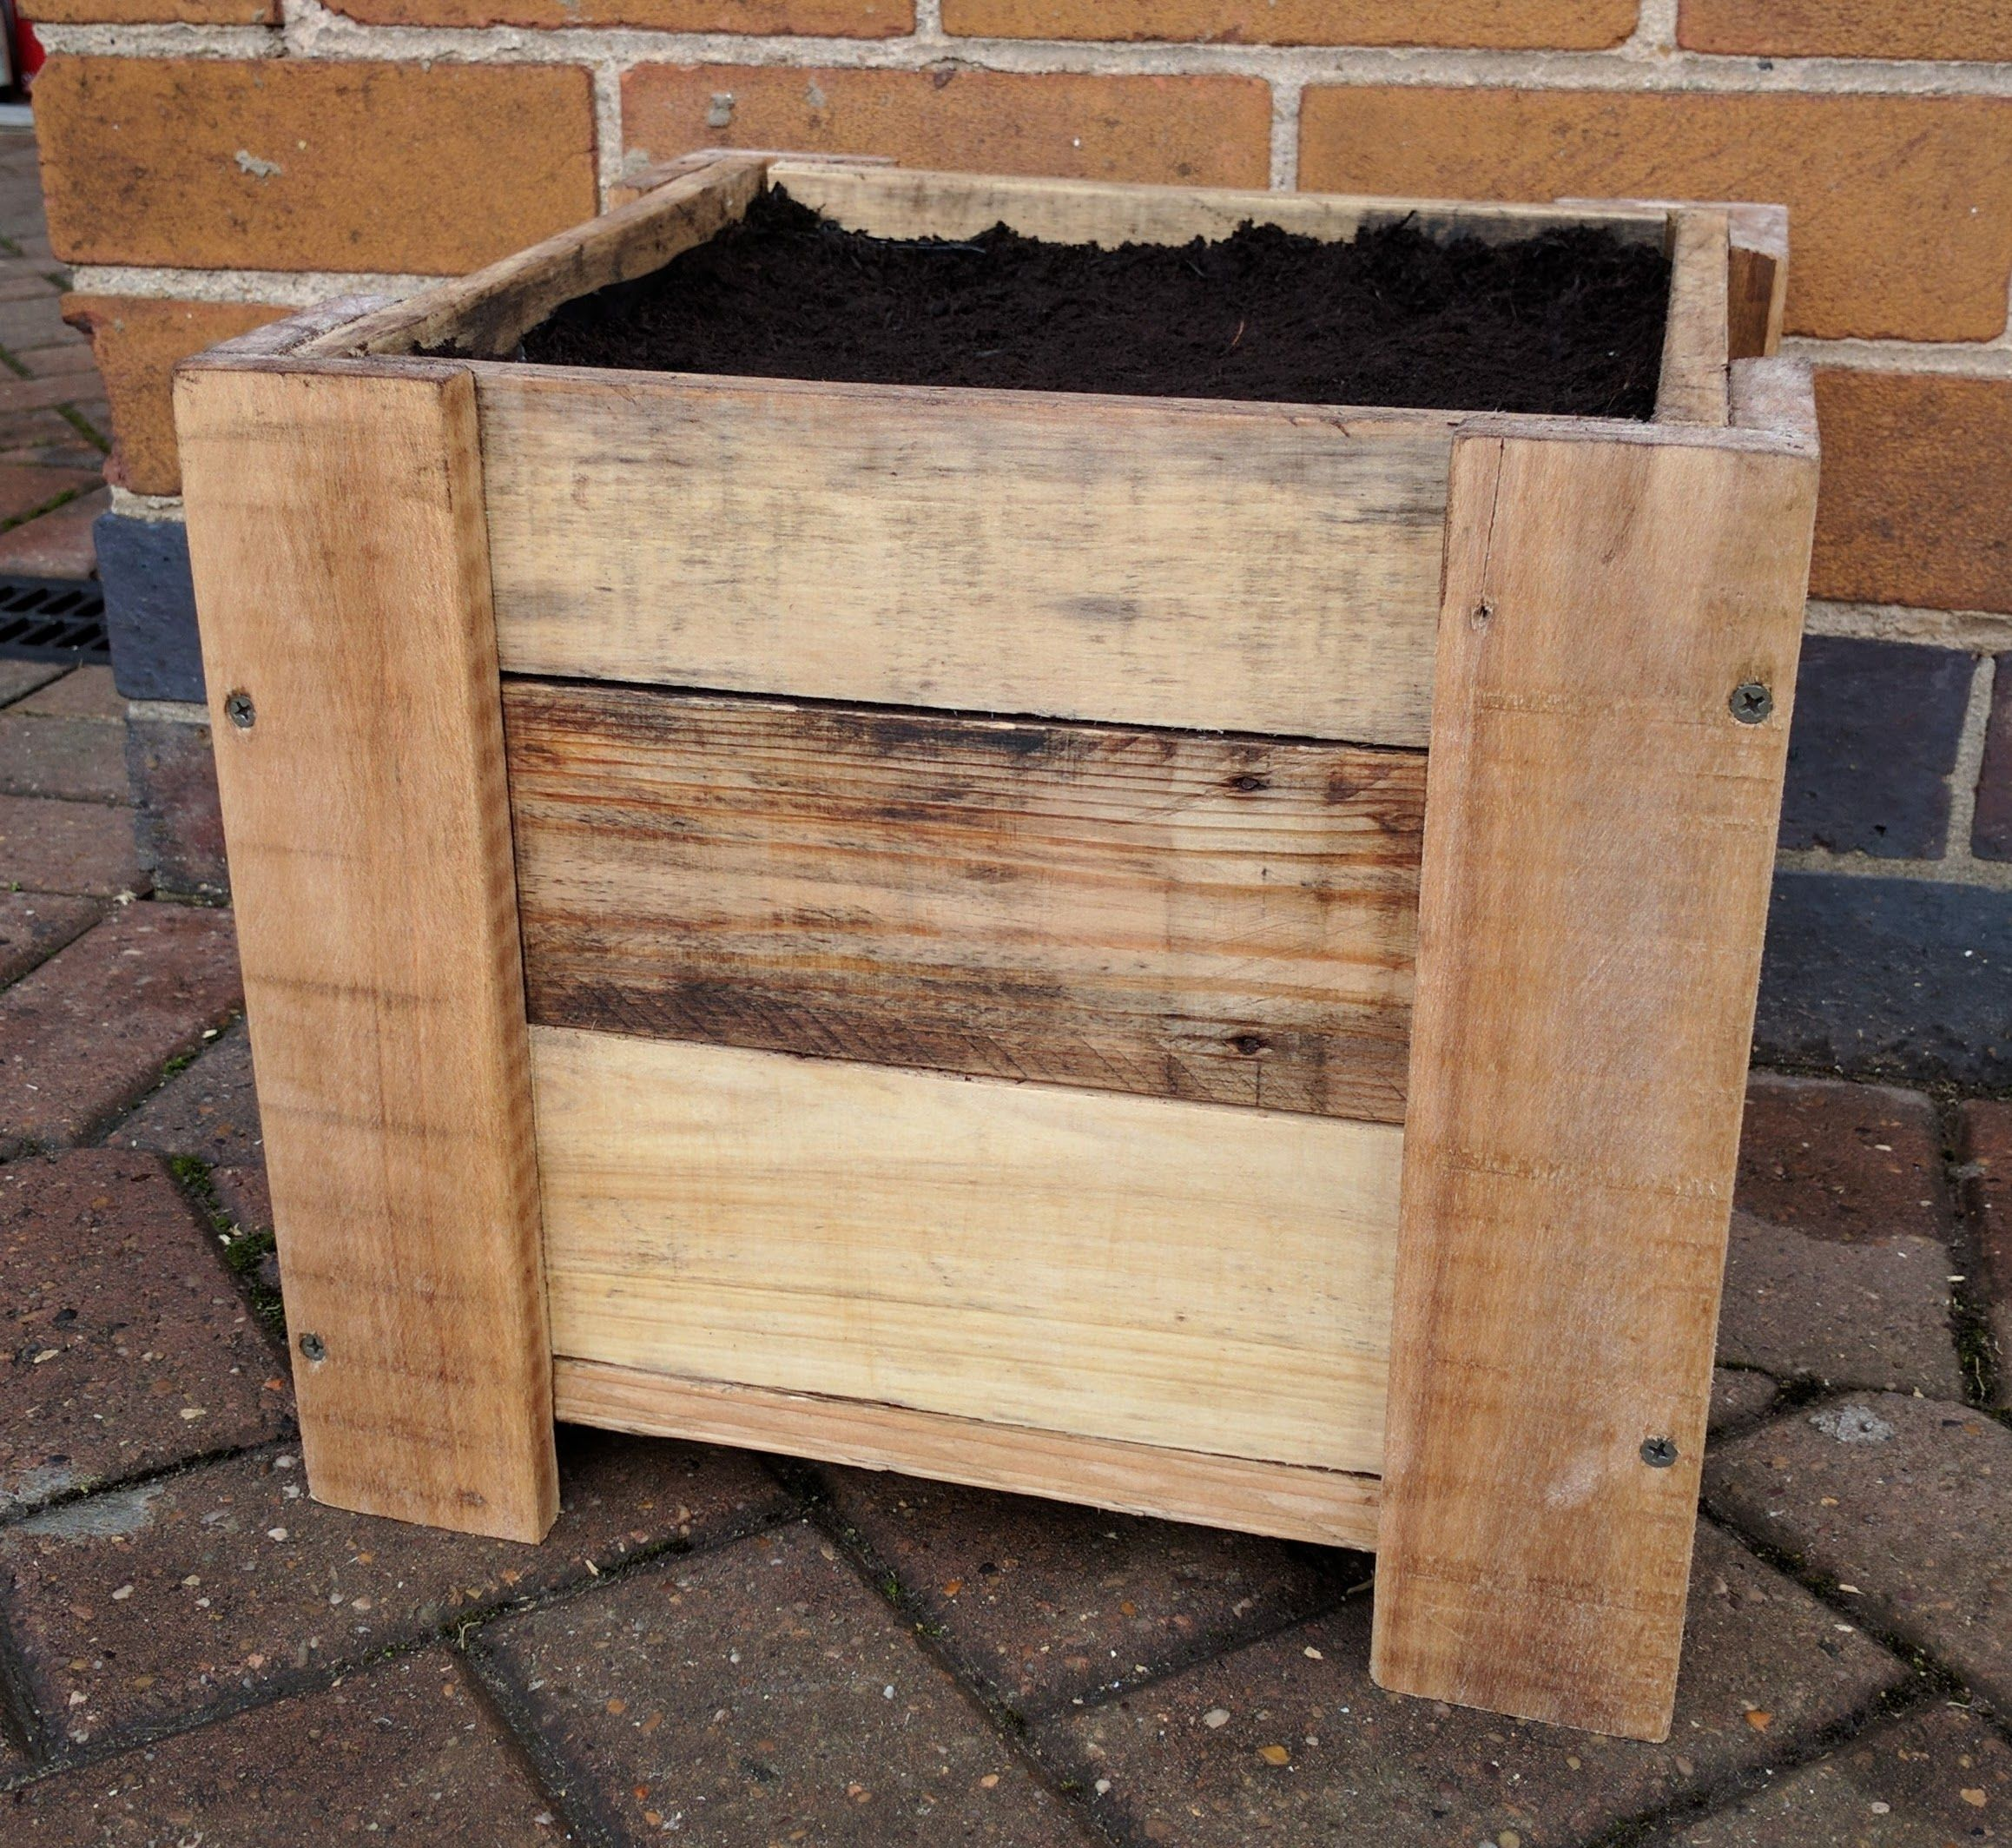 10 Diy Garden Ideas For Using Old Pallets: Pallet Wood Planter Finished In Teak Oil. (With Images